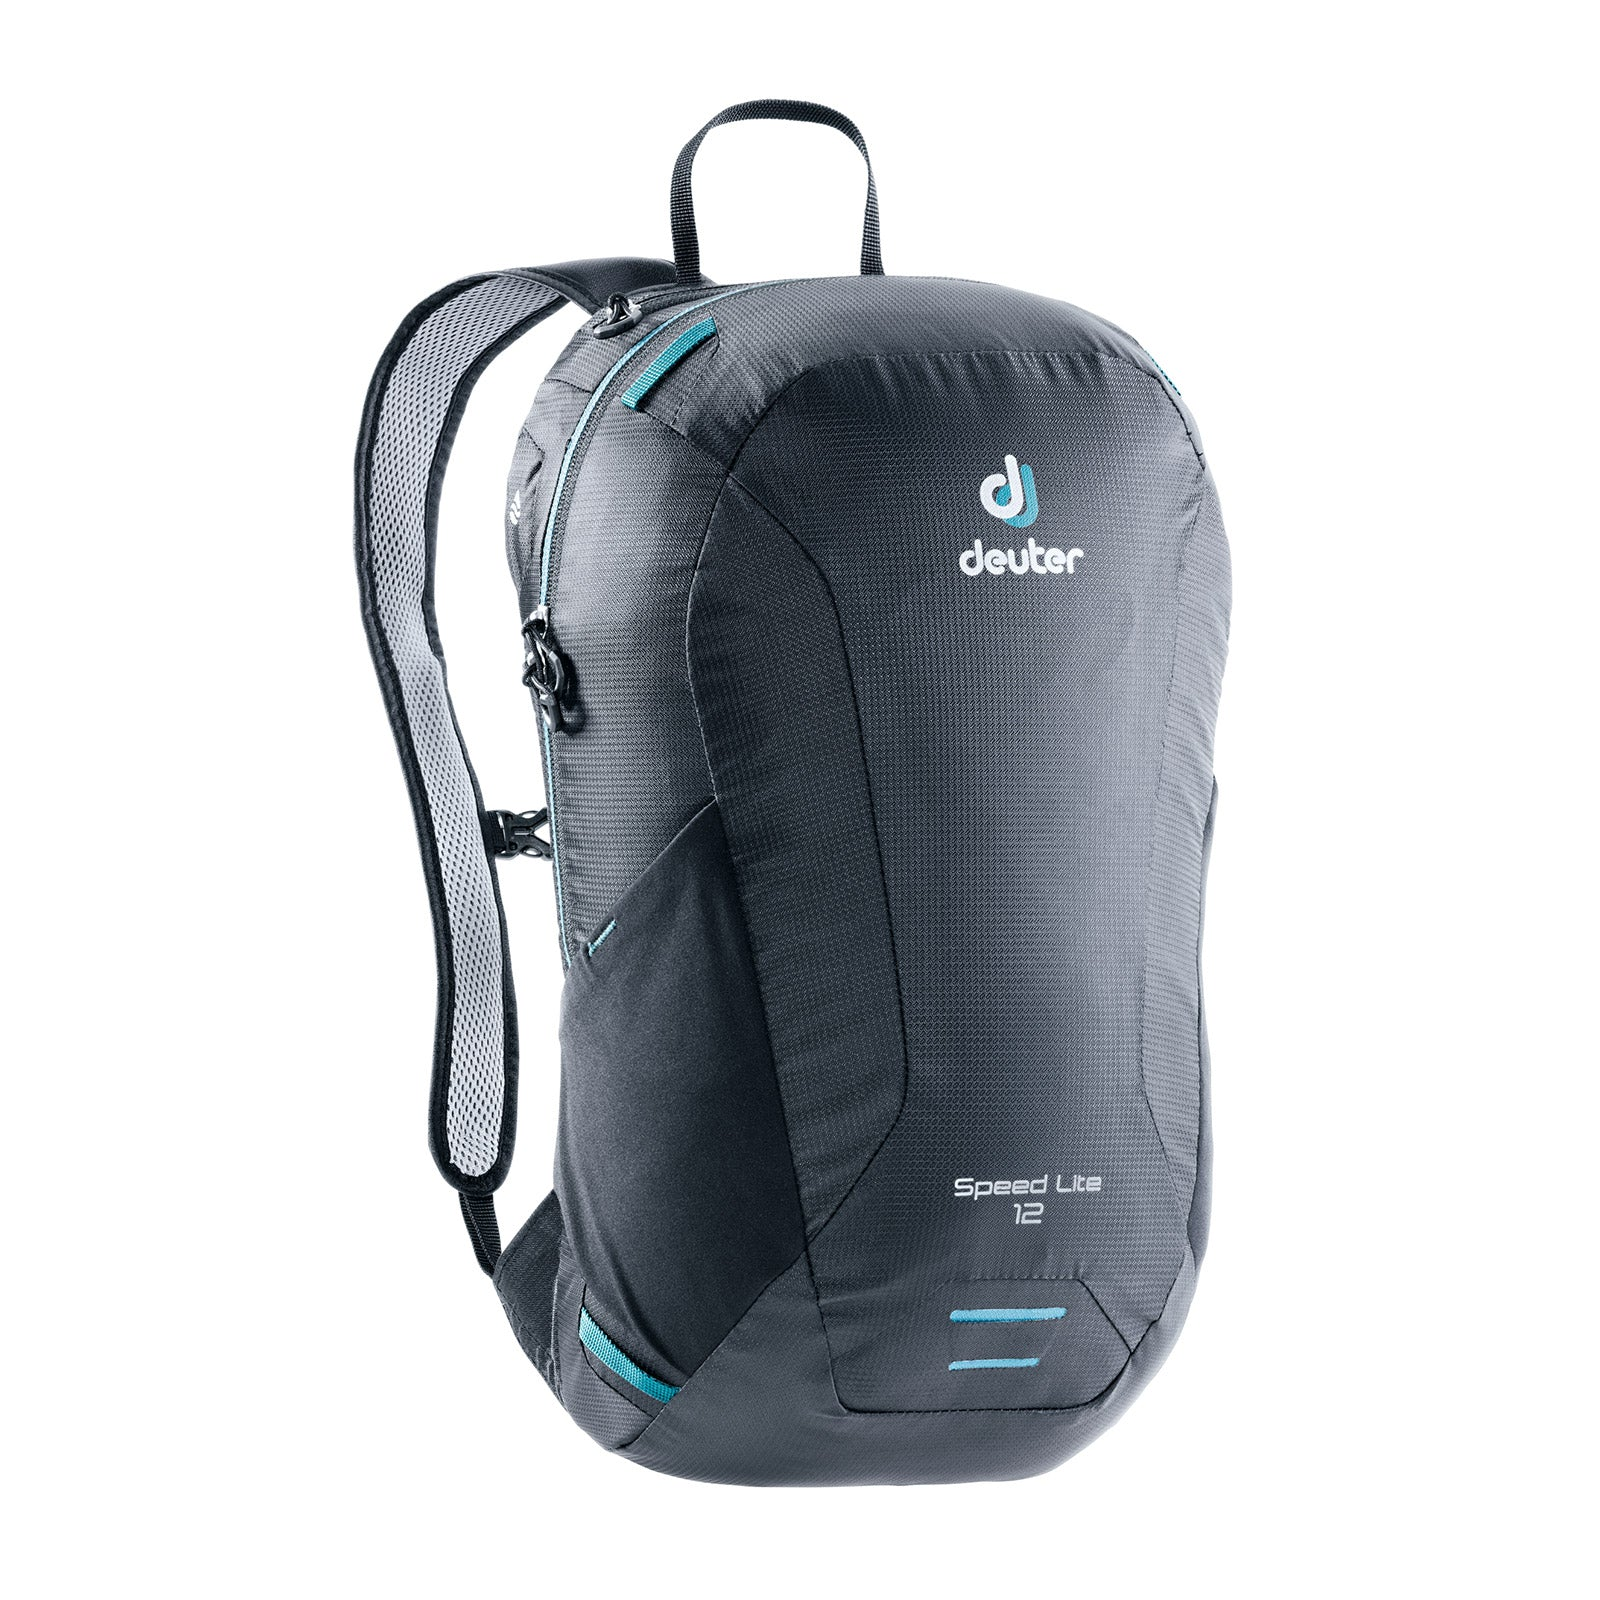 deuter speedlite 12 daypack front view in color dark grey with light blue details